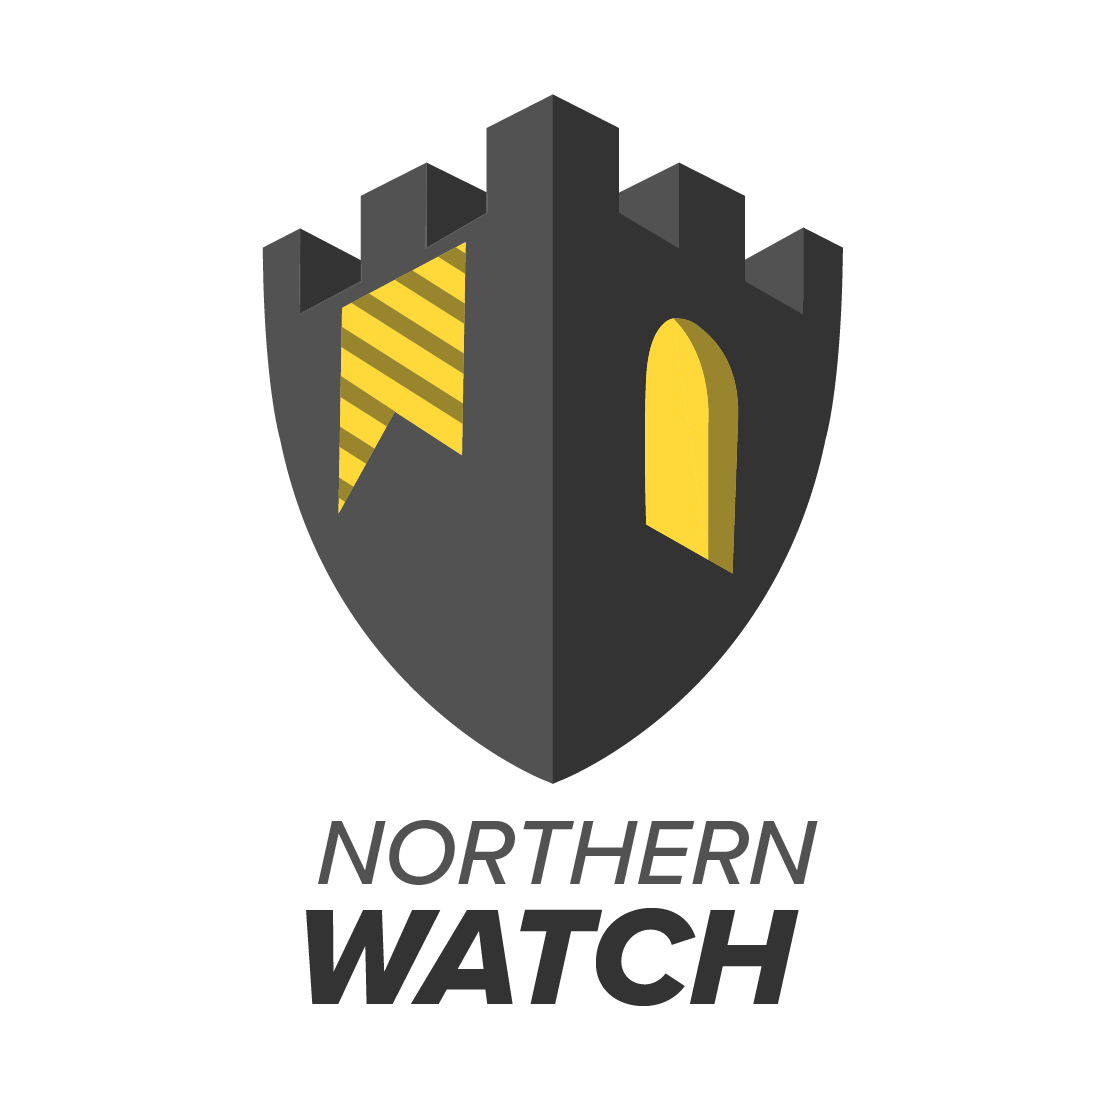 Northern Watch